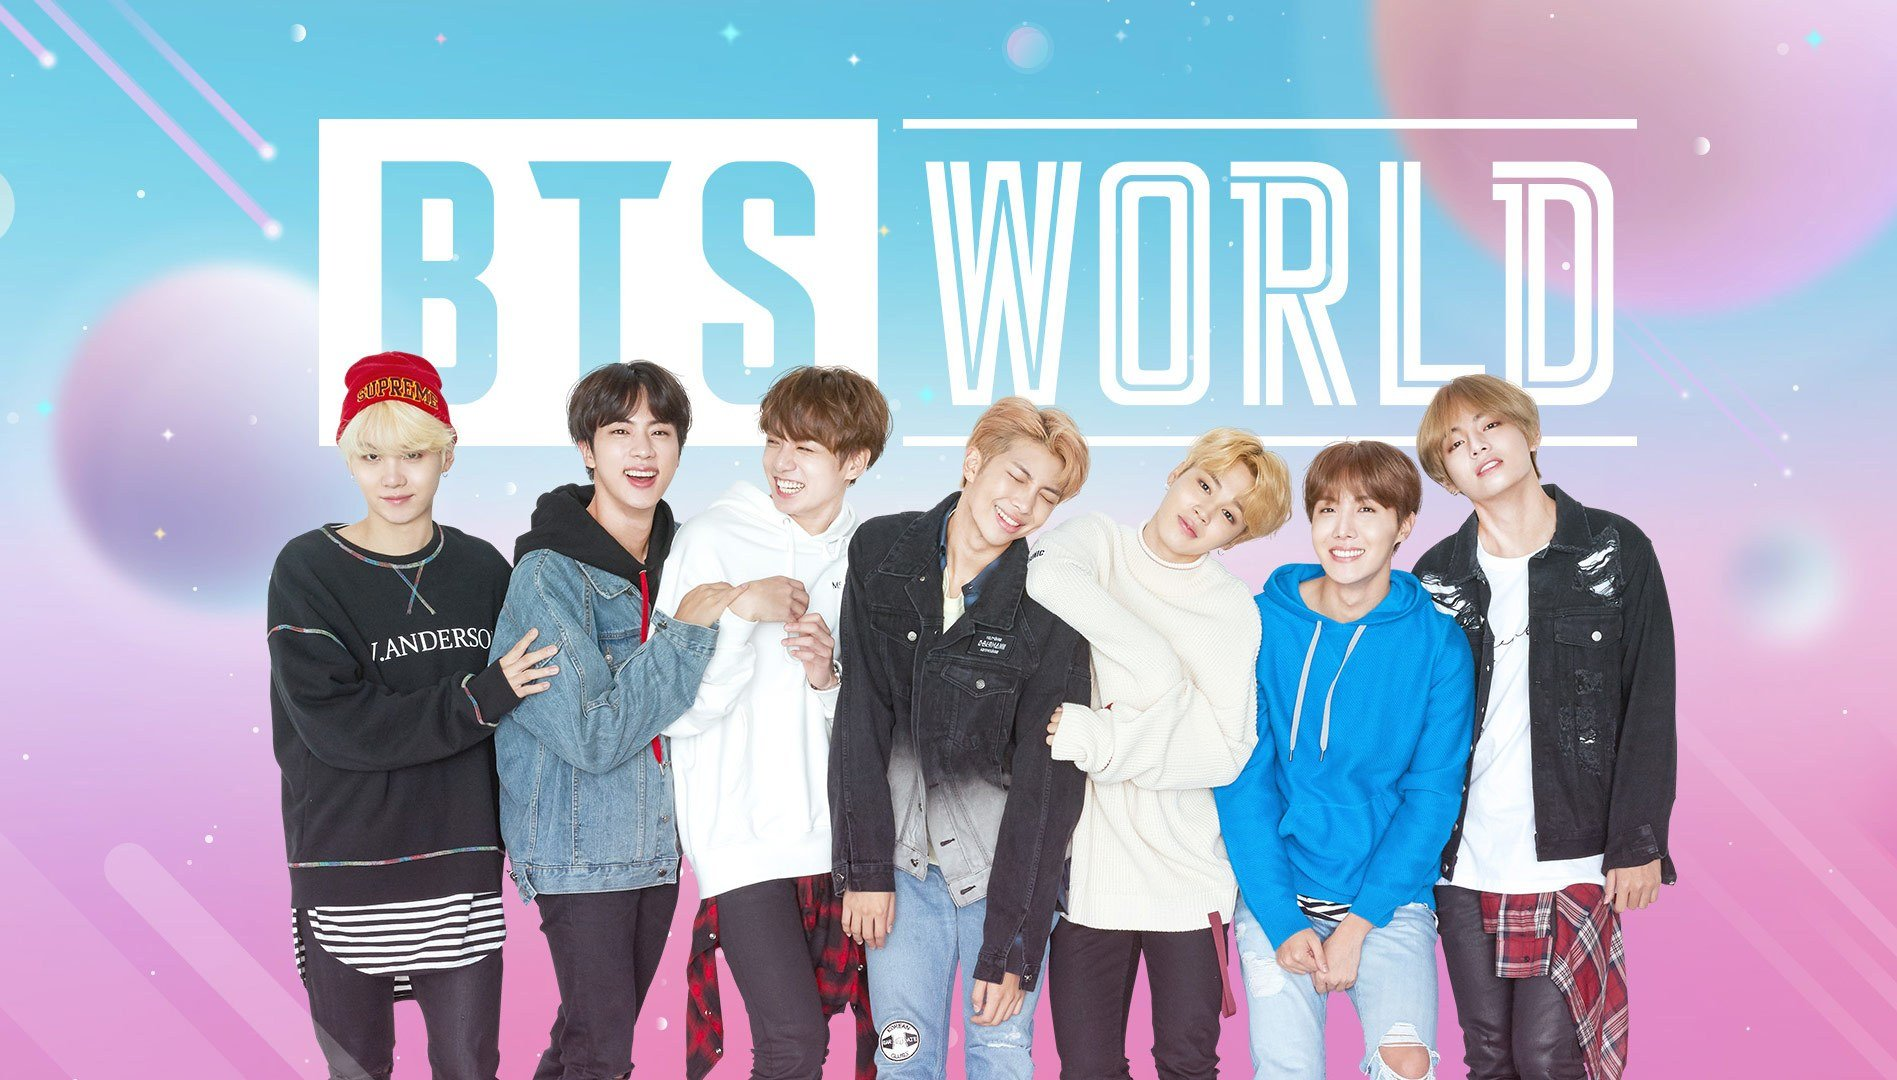 The timed exclusive song Heartbeat is now available outside of the BTS World mobile game.